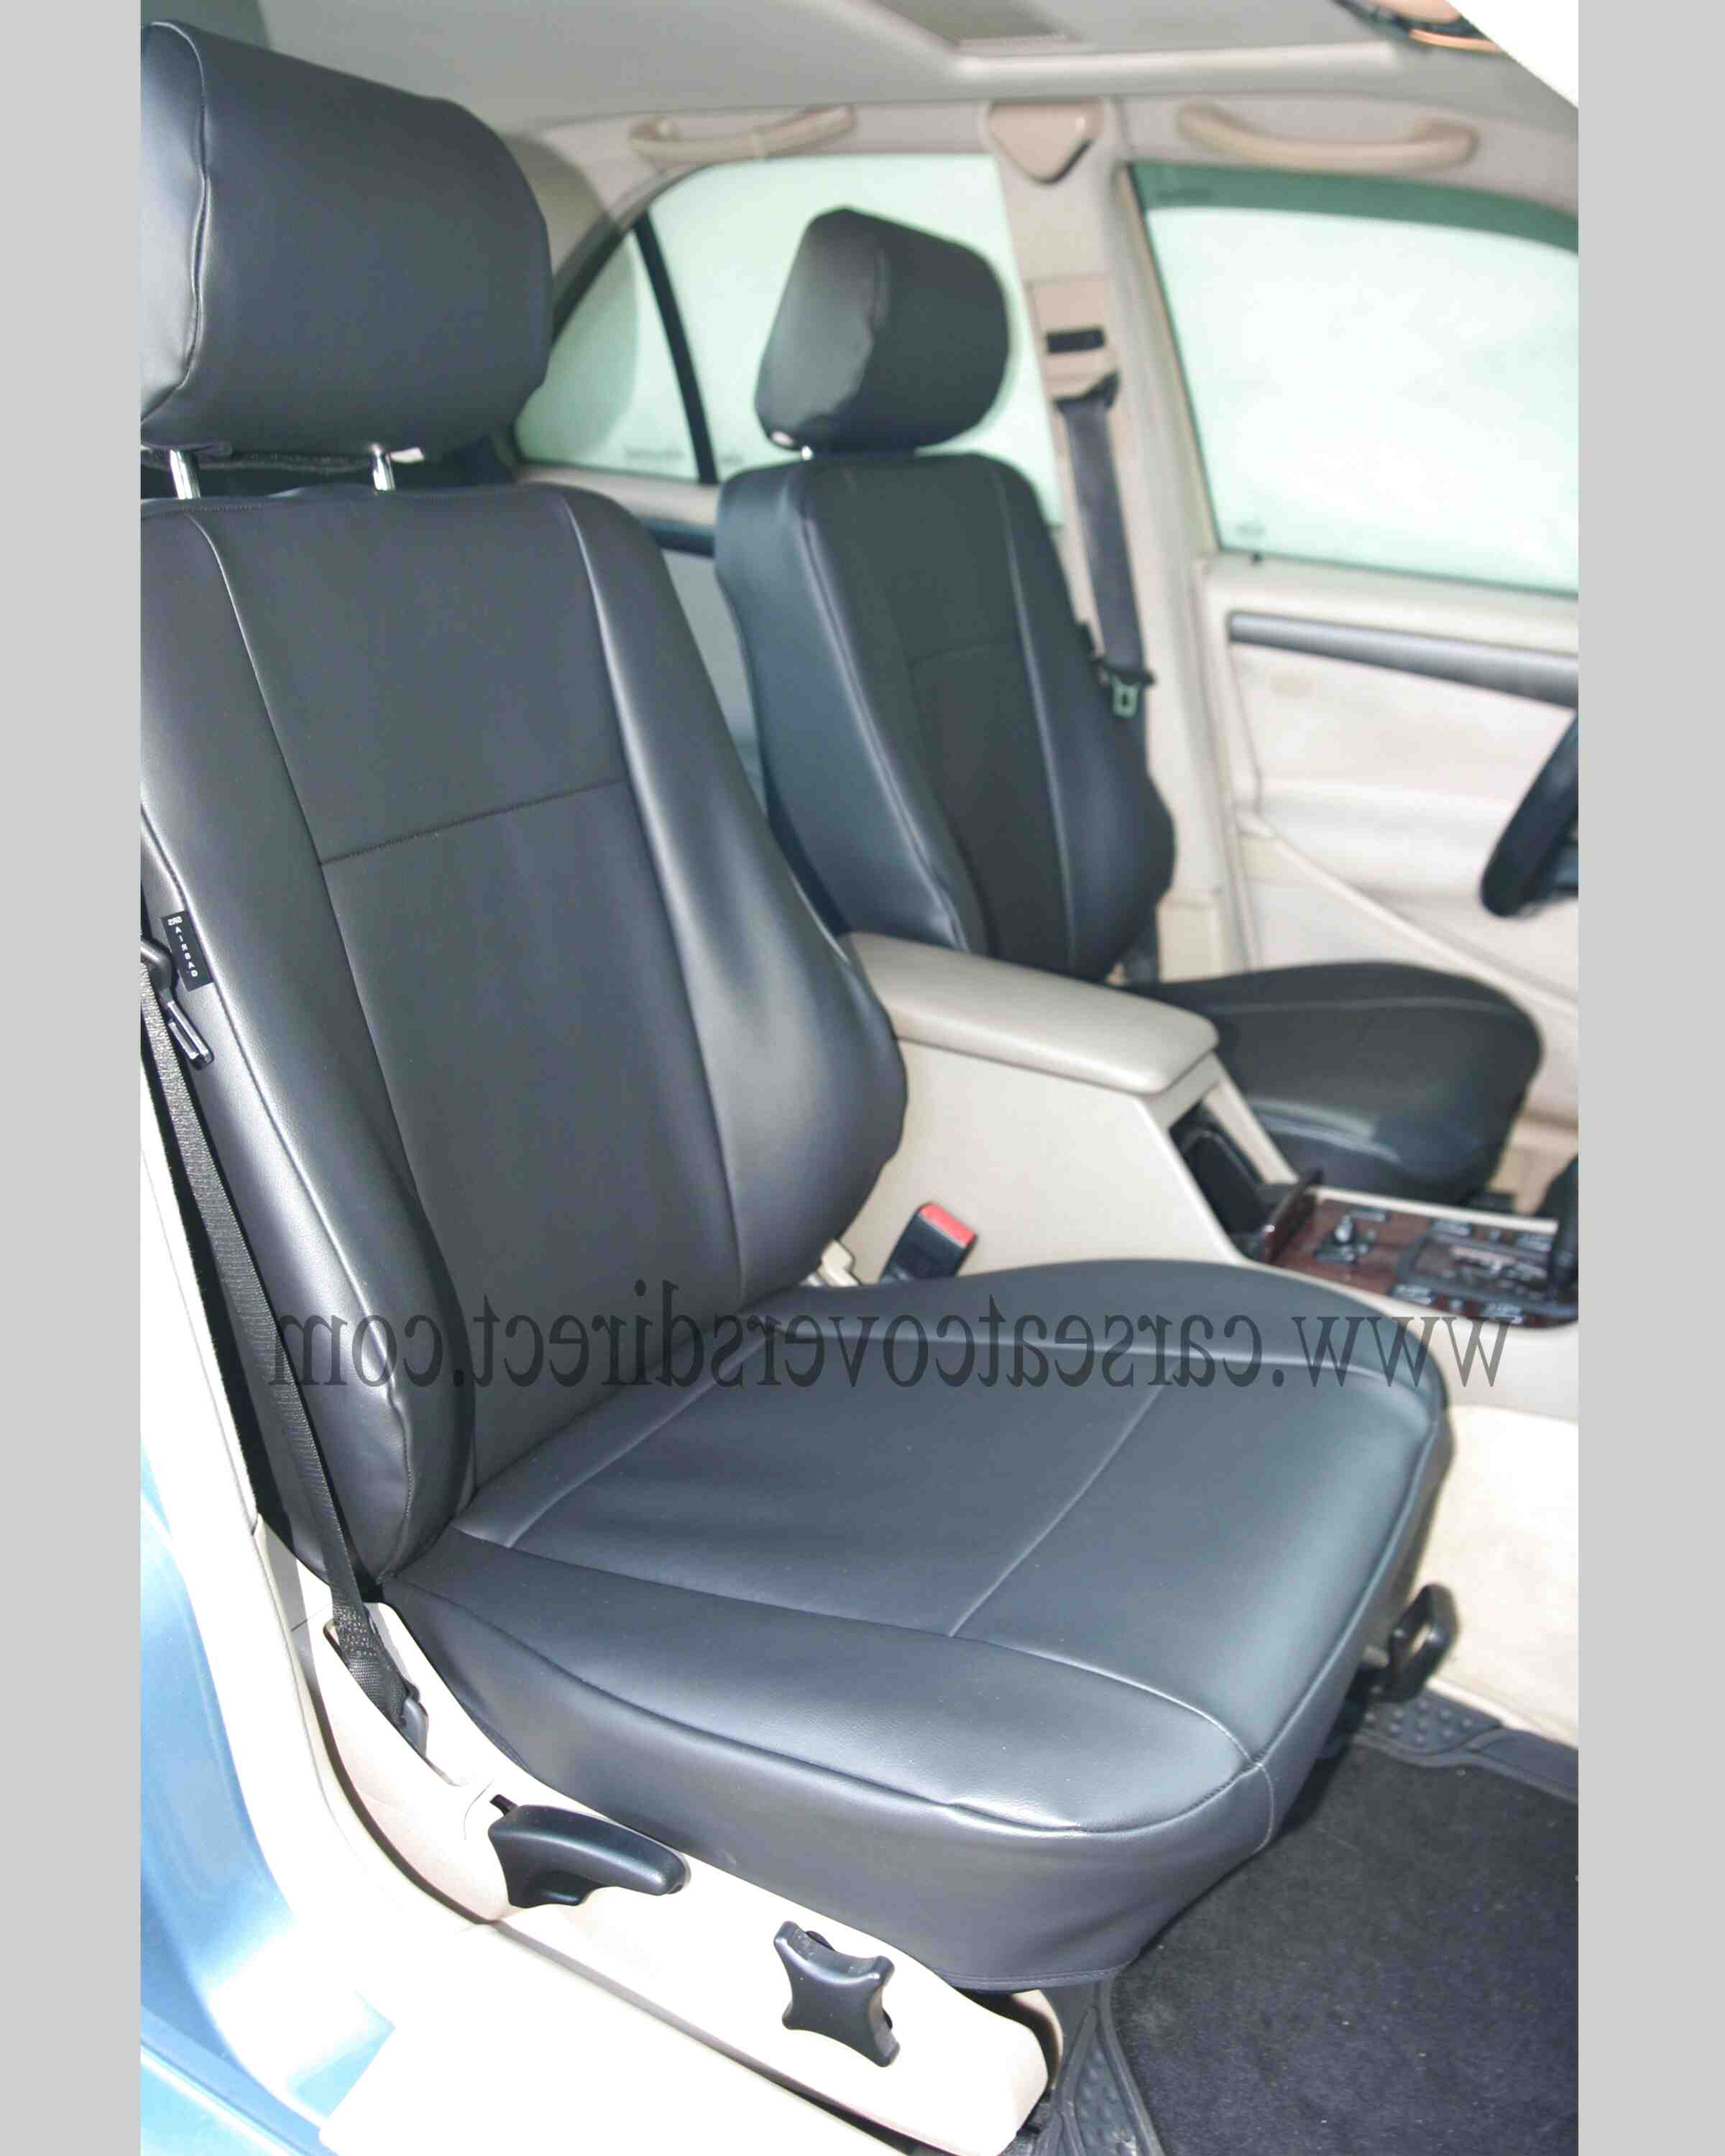 w202 seats for sale